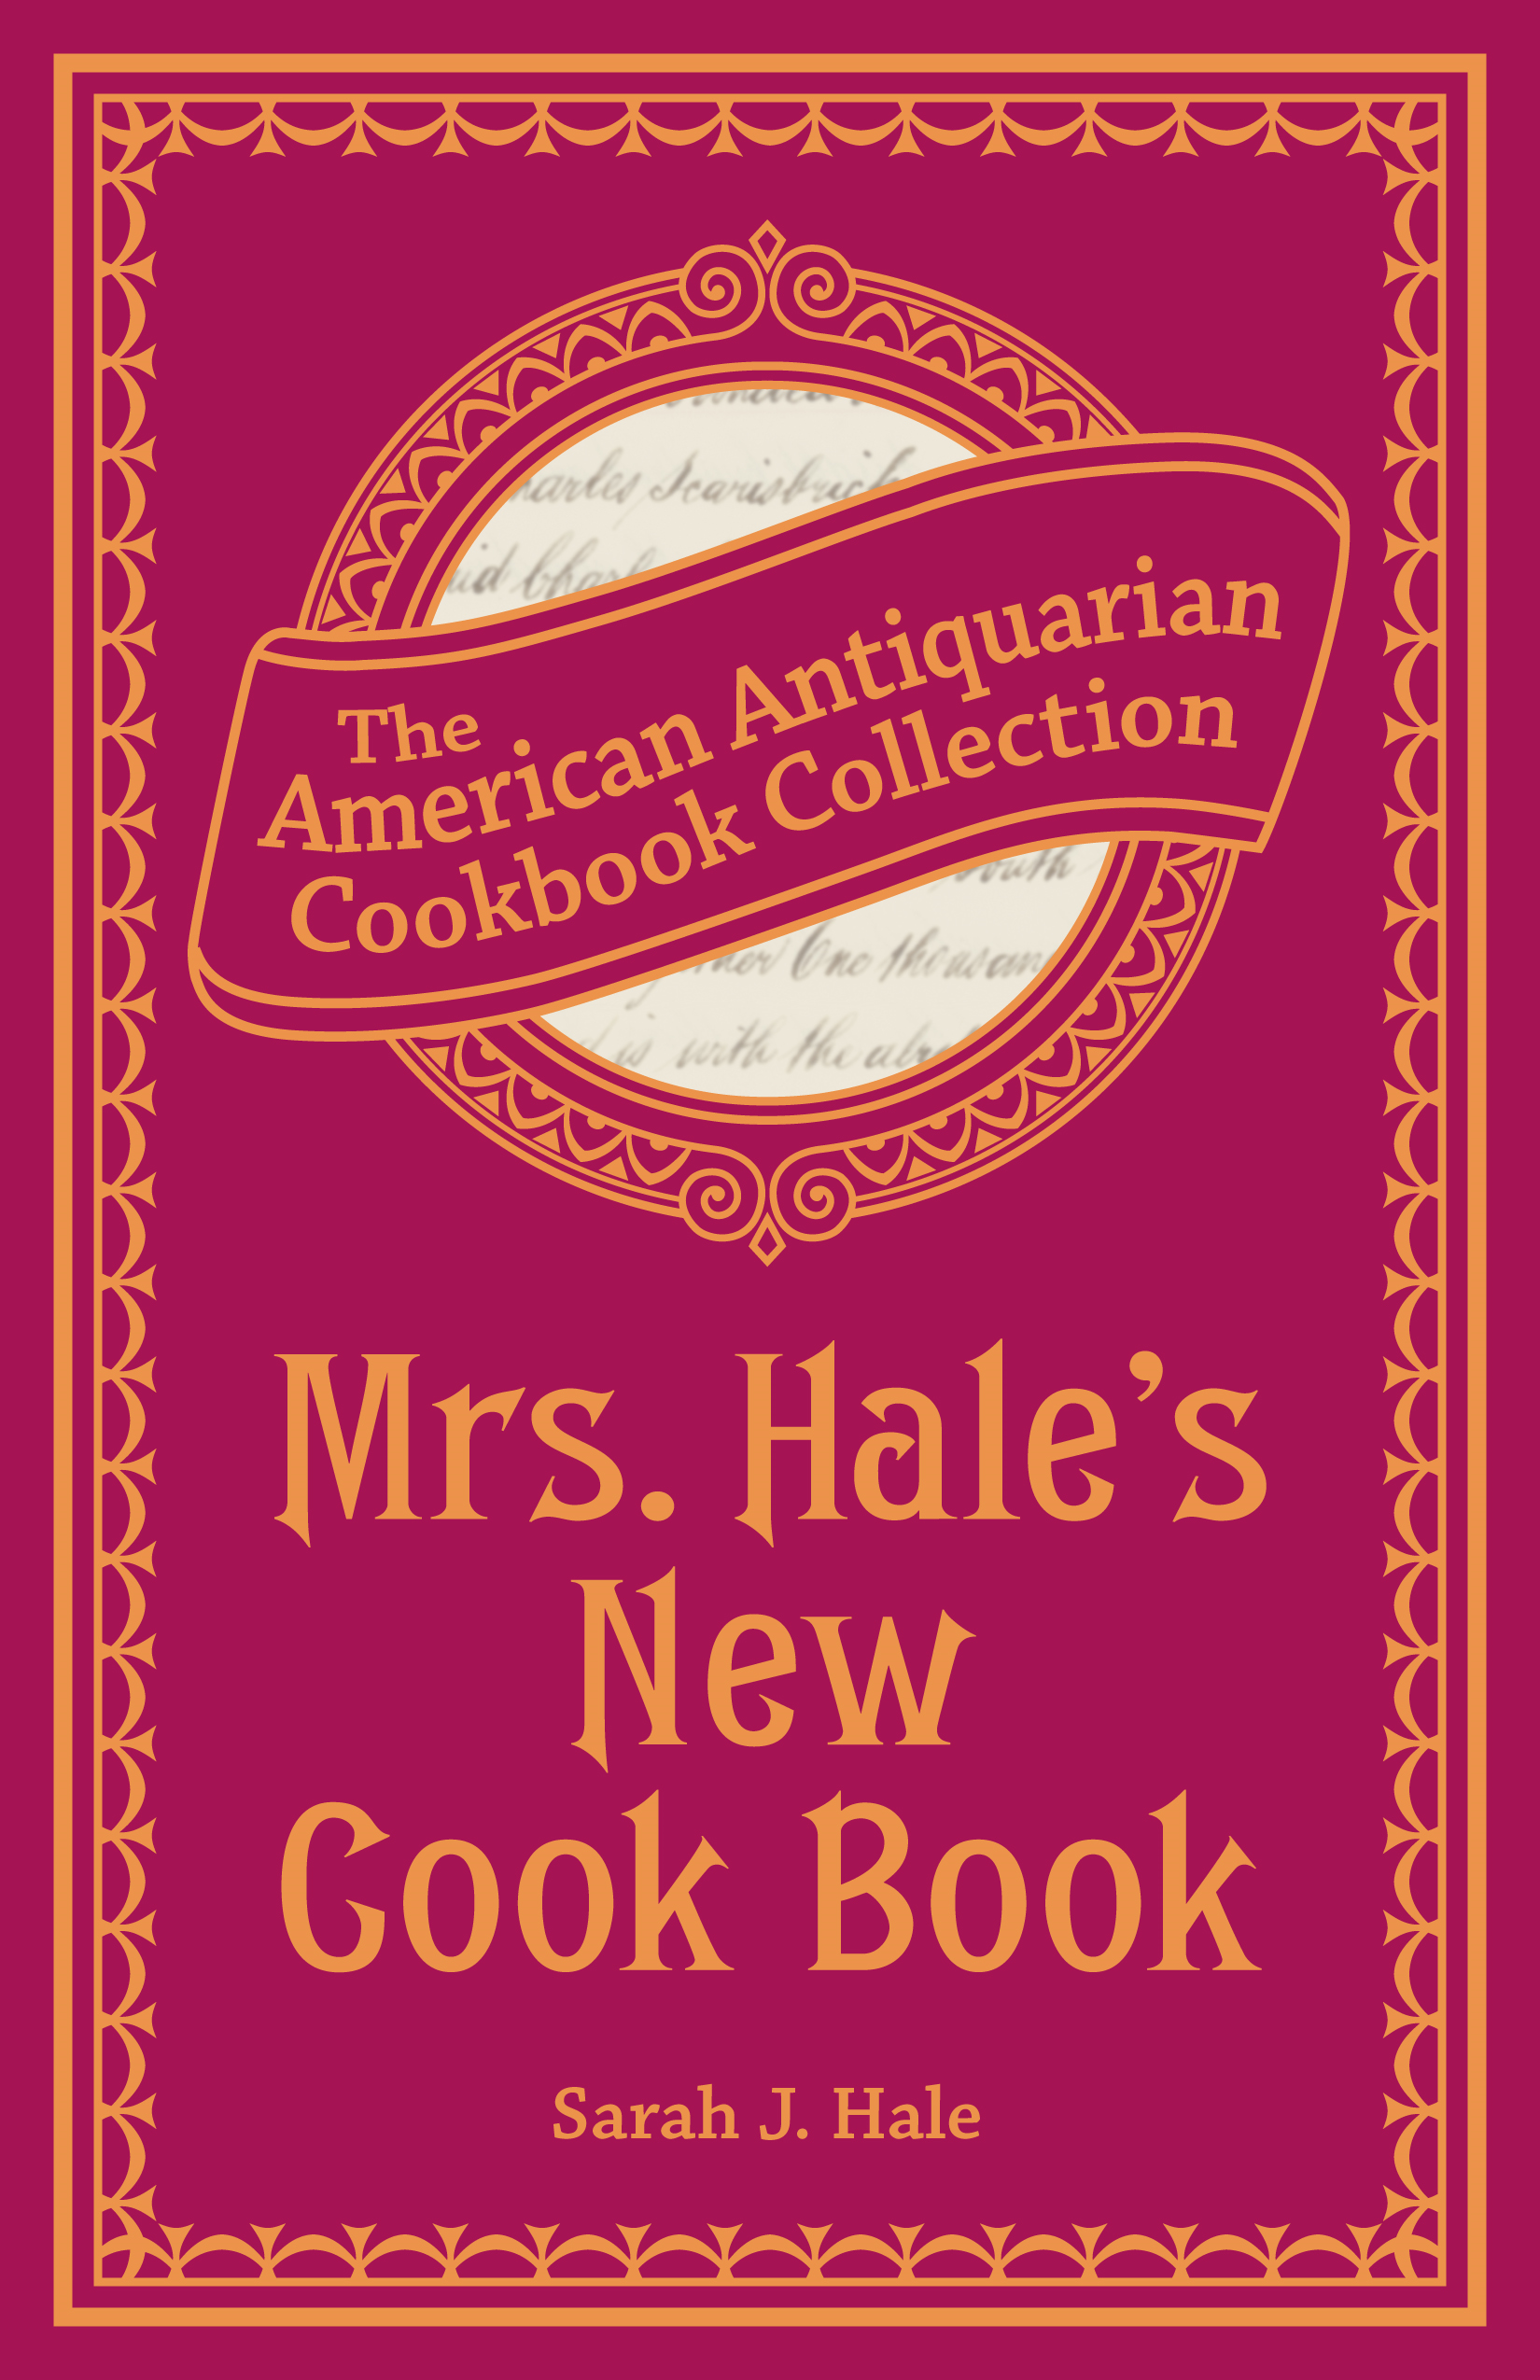 Mrs. Hale's New Cook Book